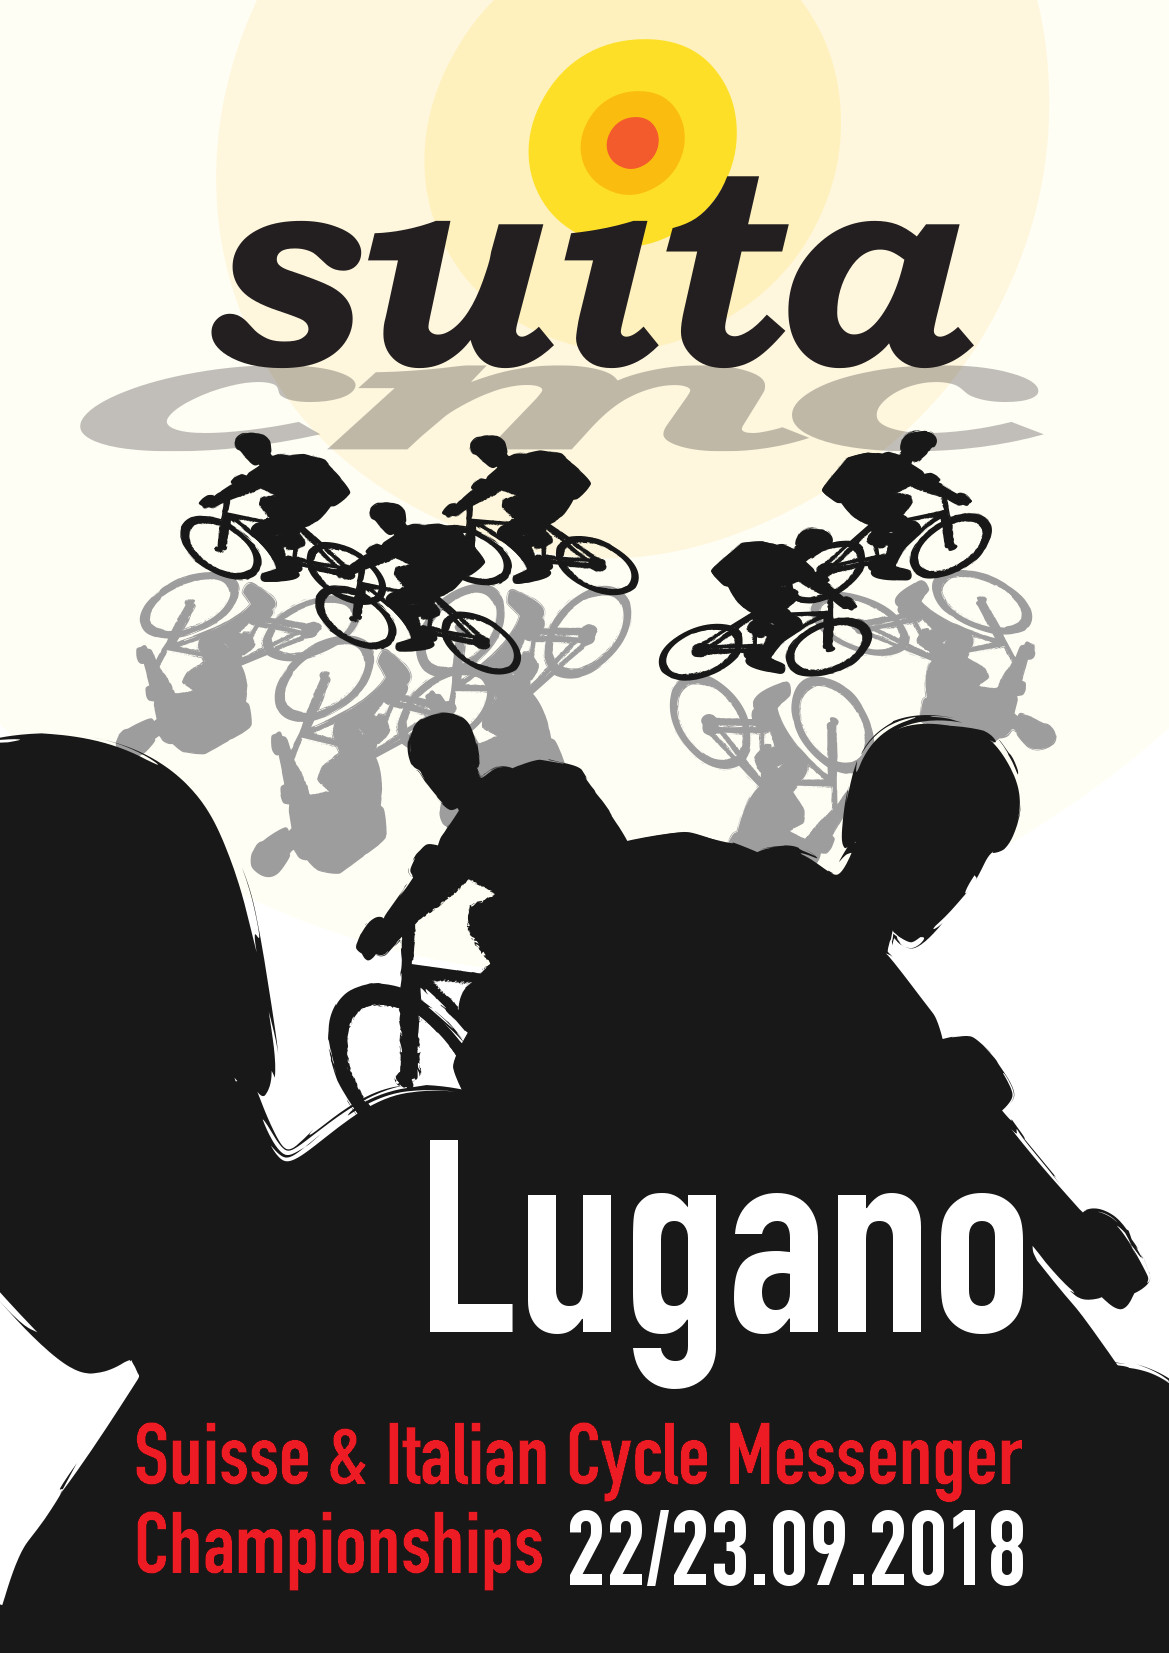 Suisse & Italian Cycle Messenger Championship Lugano 22/23.05.2018